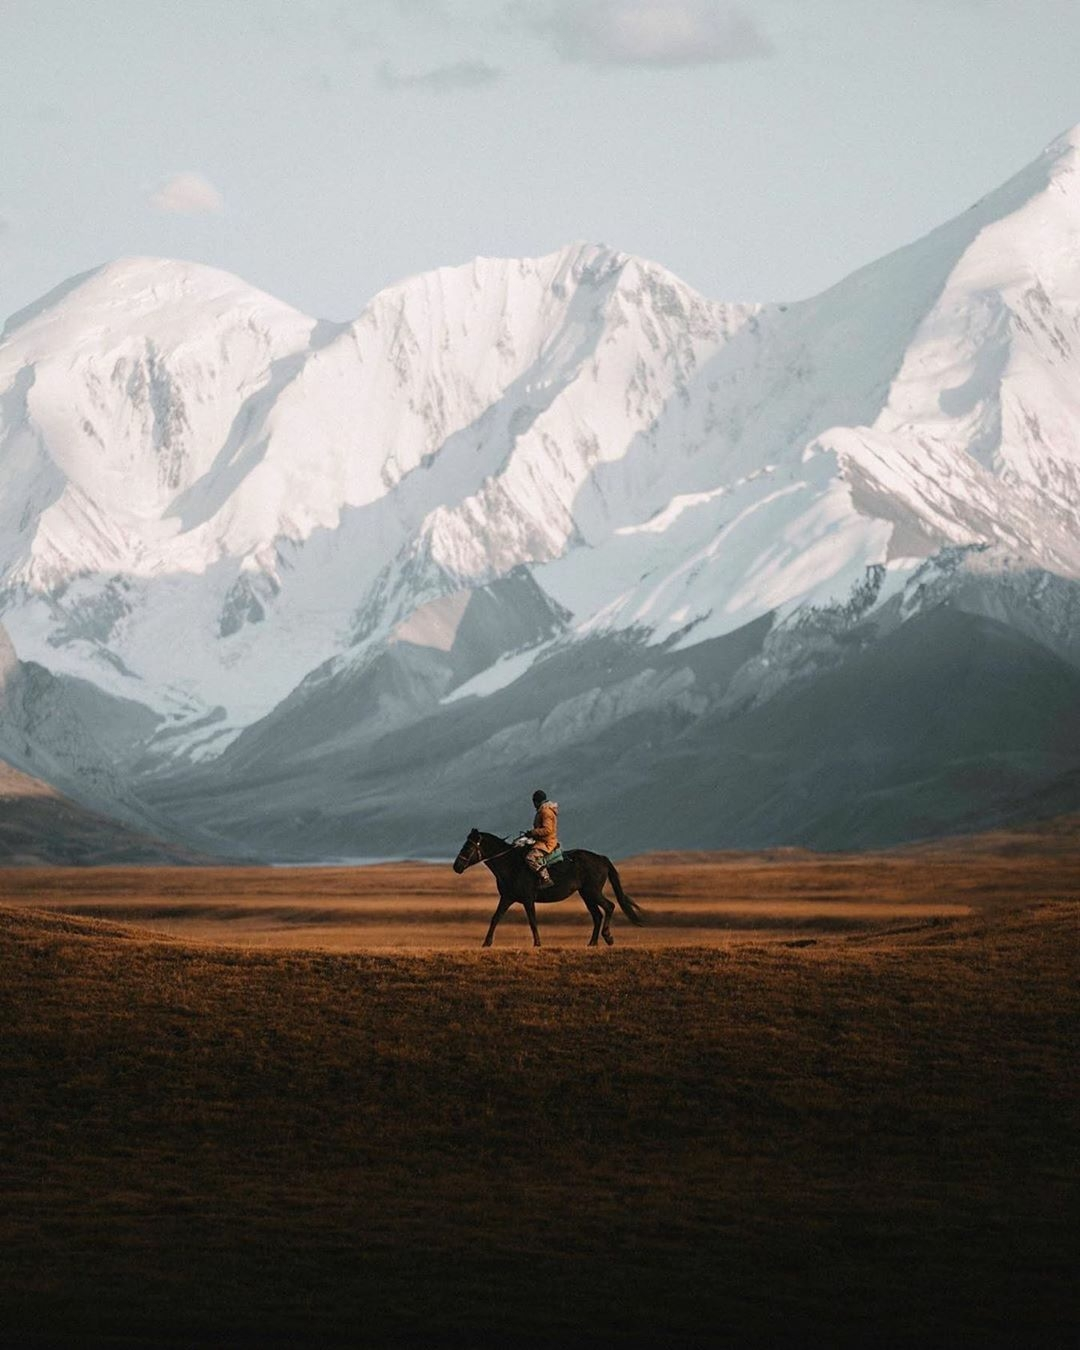 man riding horse with mountains in background